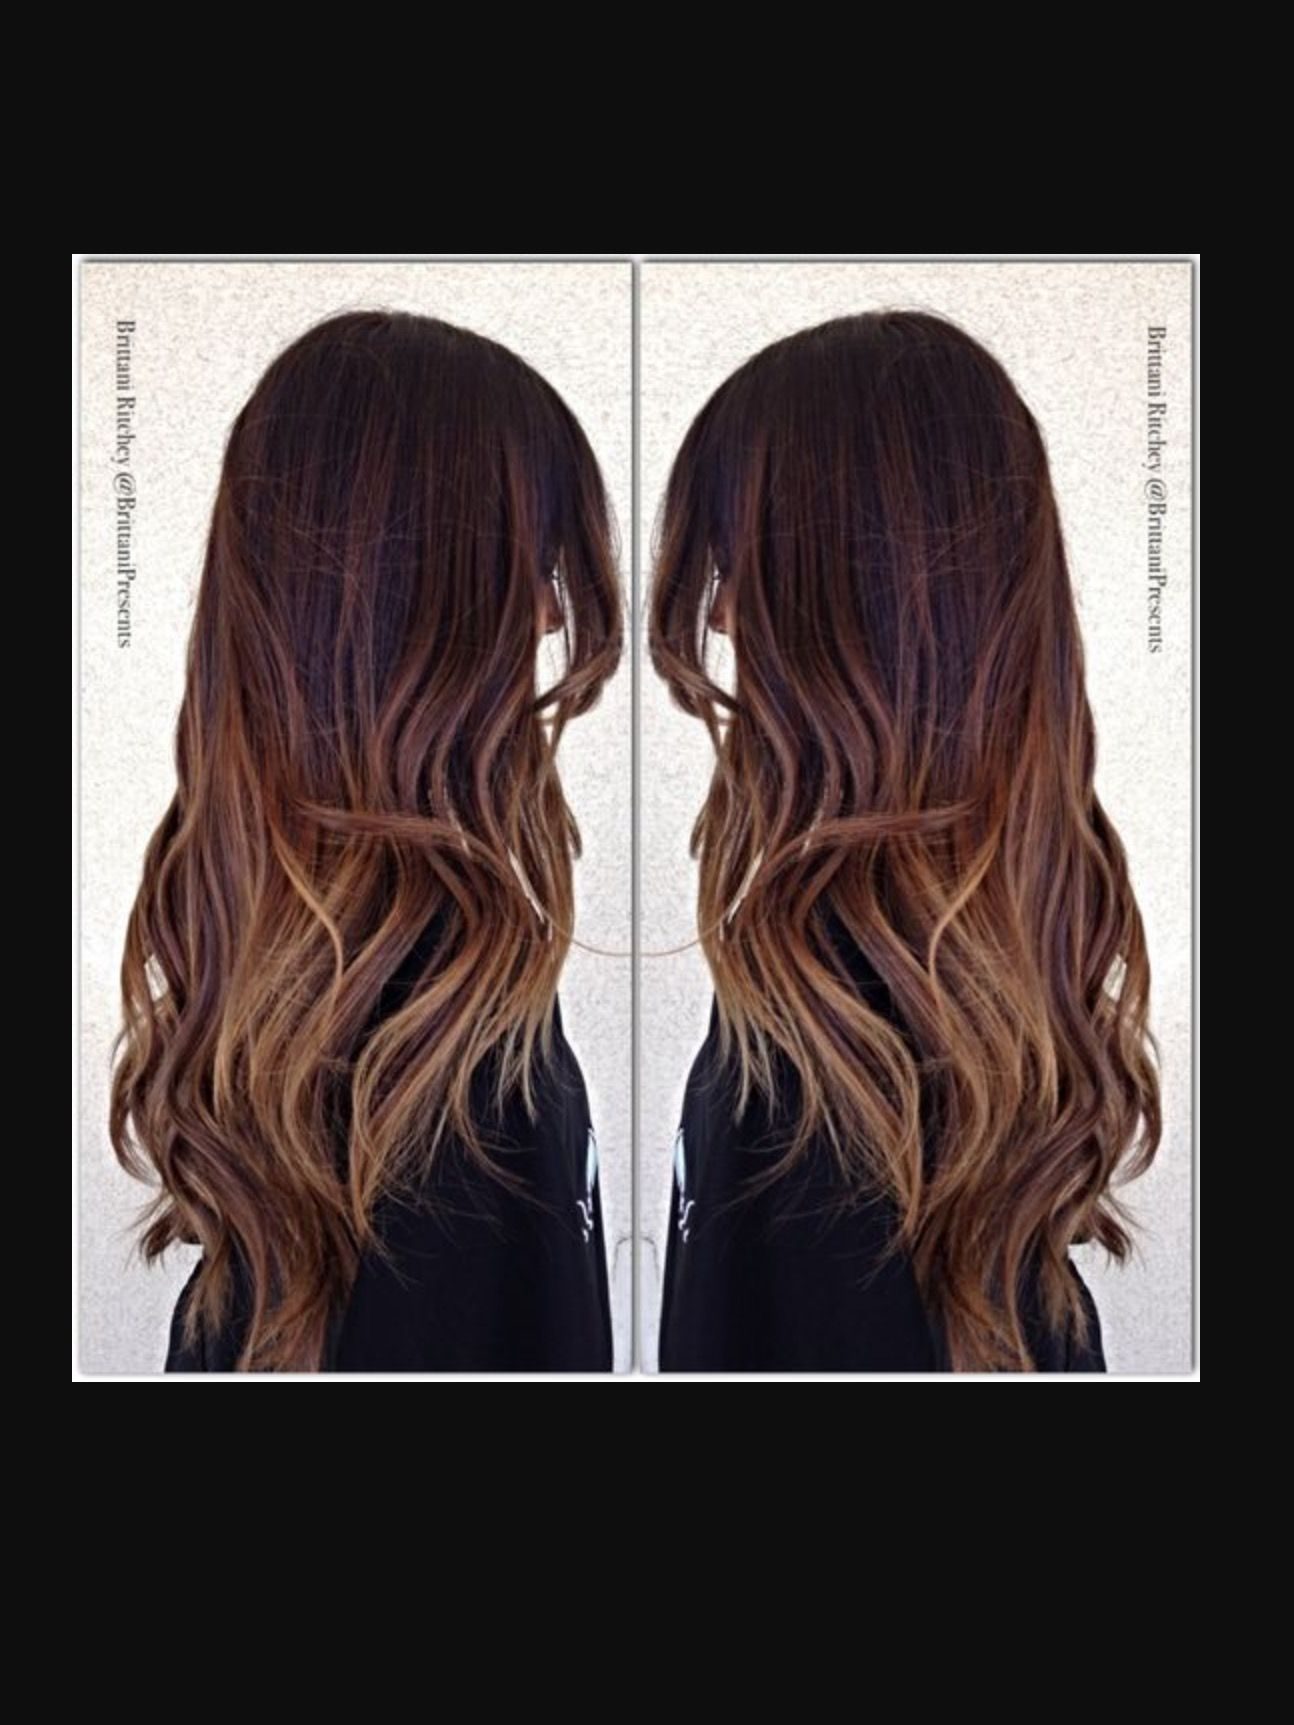 Pin by Kiaira Glover on Variegated Color: Brown (With images)   Hair styles, Hair, Long hair styles